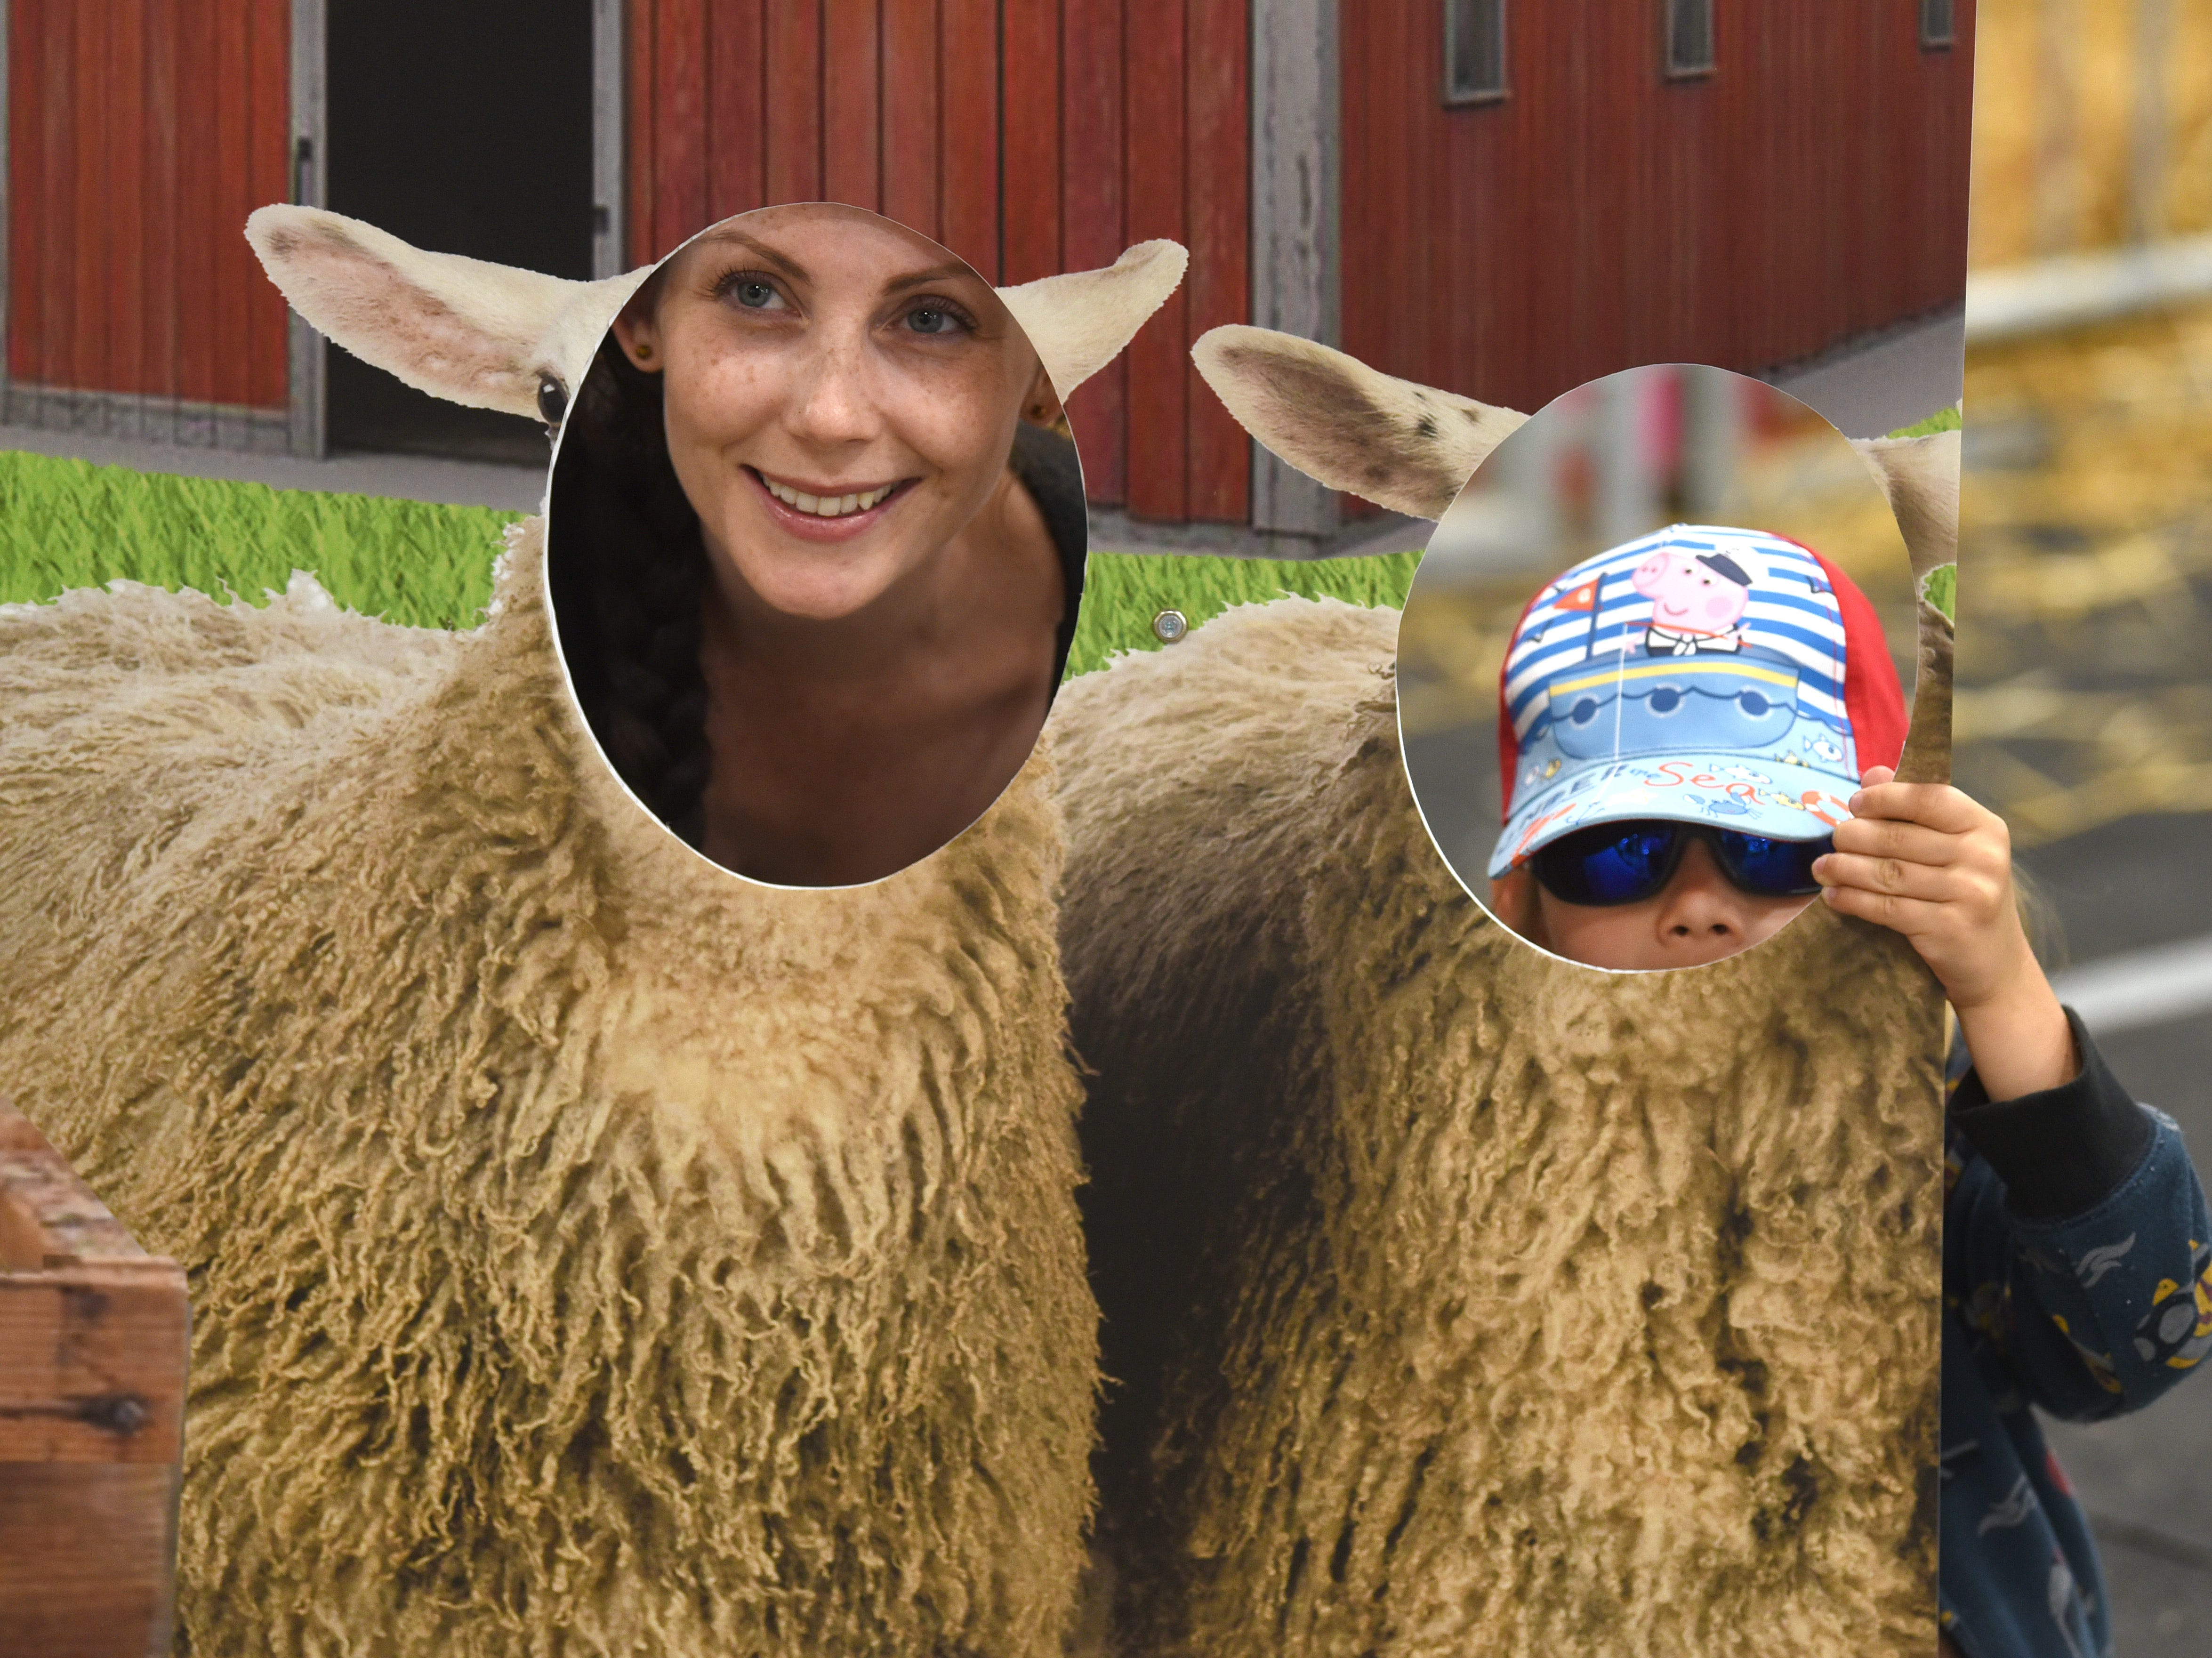 Kelly Denooyer, left, and Sebastian Pieracuoli, 3, pose as sheep in the livestock area at the Michigan State Fair at the Suburban Collection Showplace in Novi on August 30, 2018.